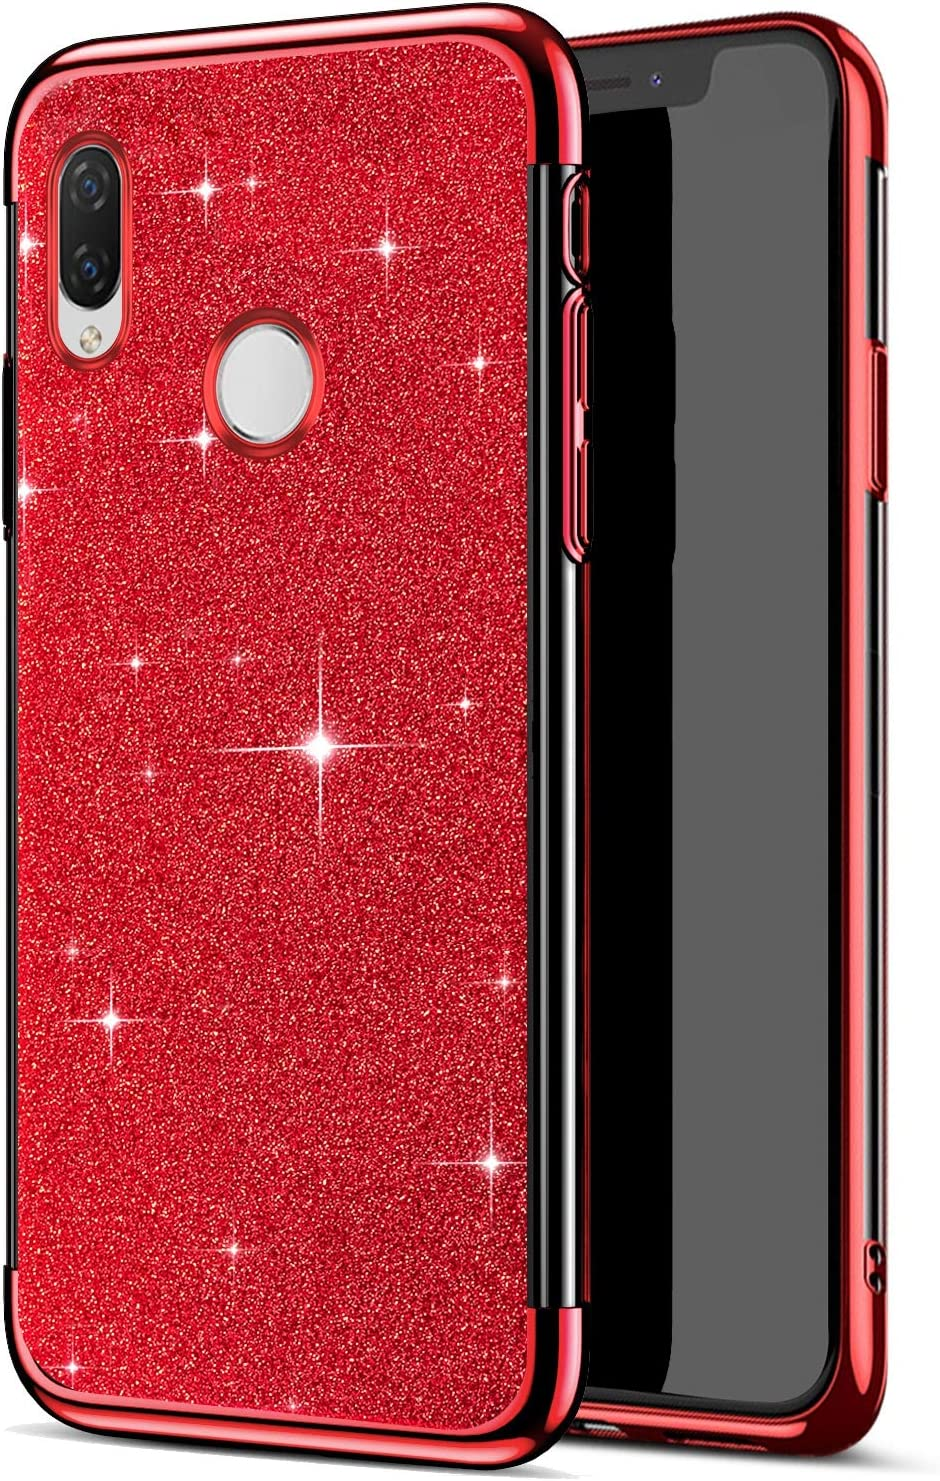 Herbests Compatible with Huawei Honor Play Case Women Girl Glitter Bling Crystal Sparkle Shiny Soft Transparent Plating TPU Silicone Rubber Shockproof Protective Case Cover,Silver